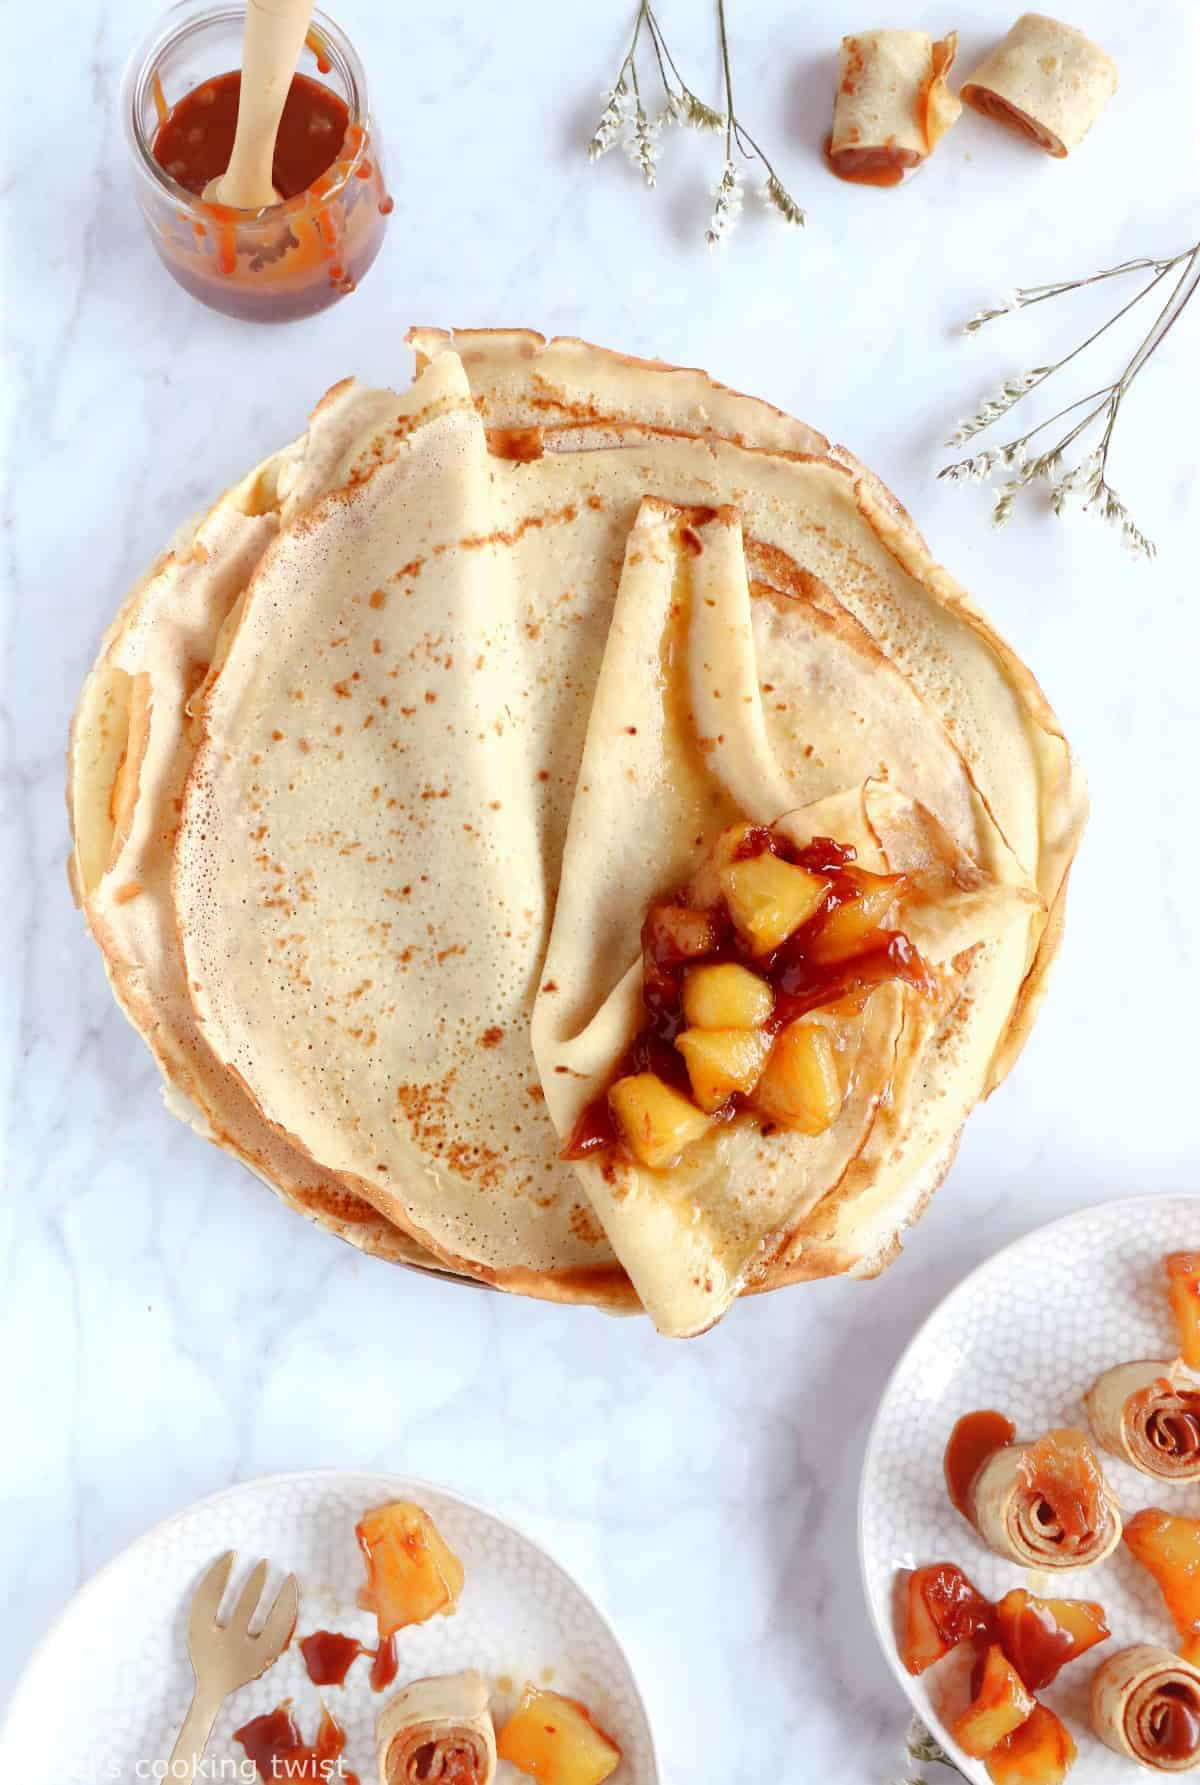 These salted caramel apple crepe rolls make for an elegant and fancy dessert yet are rather simple to make.